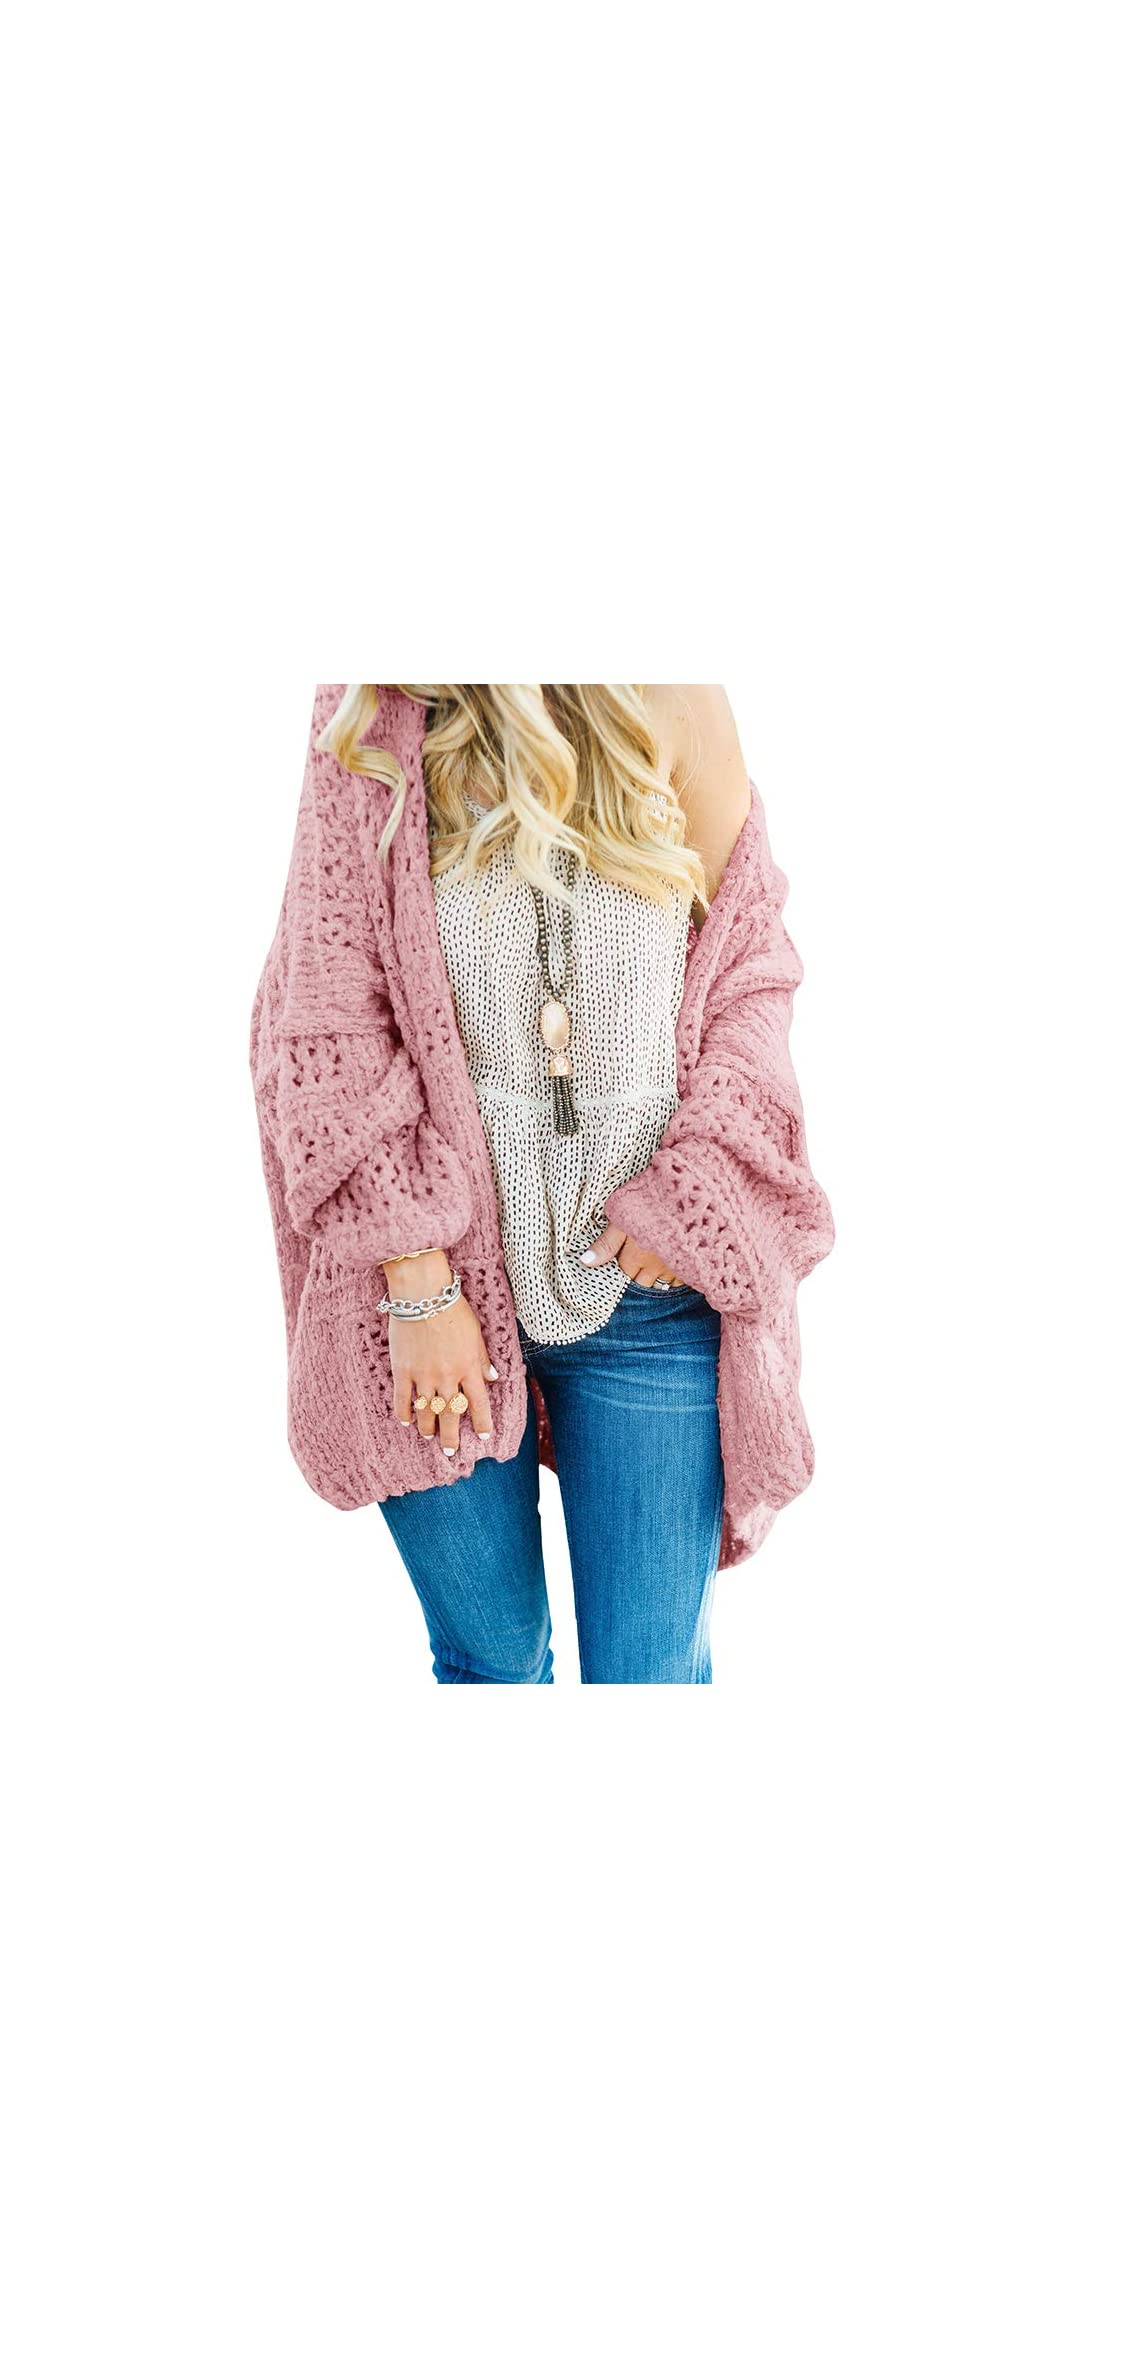 Women's Open Front Cardigan Long Boyfriend Oversized